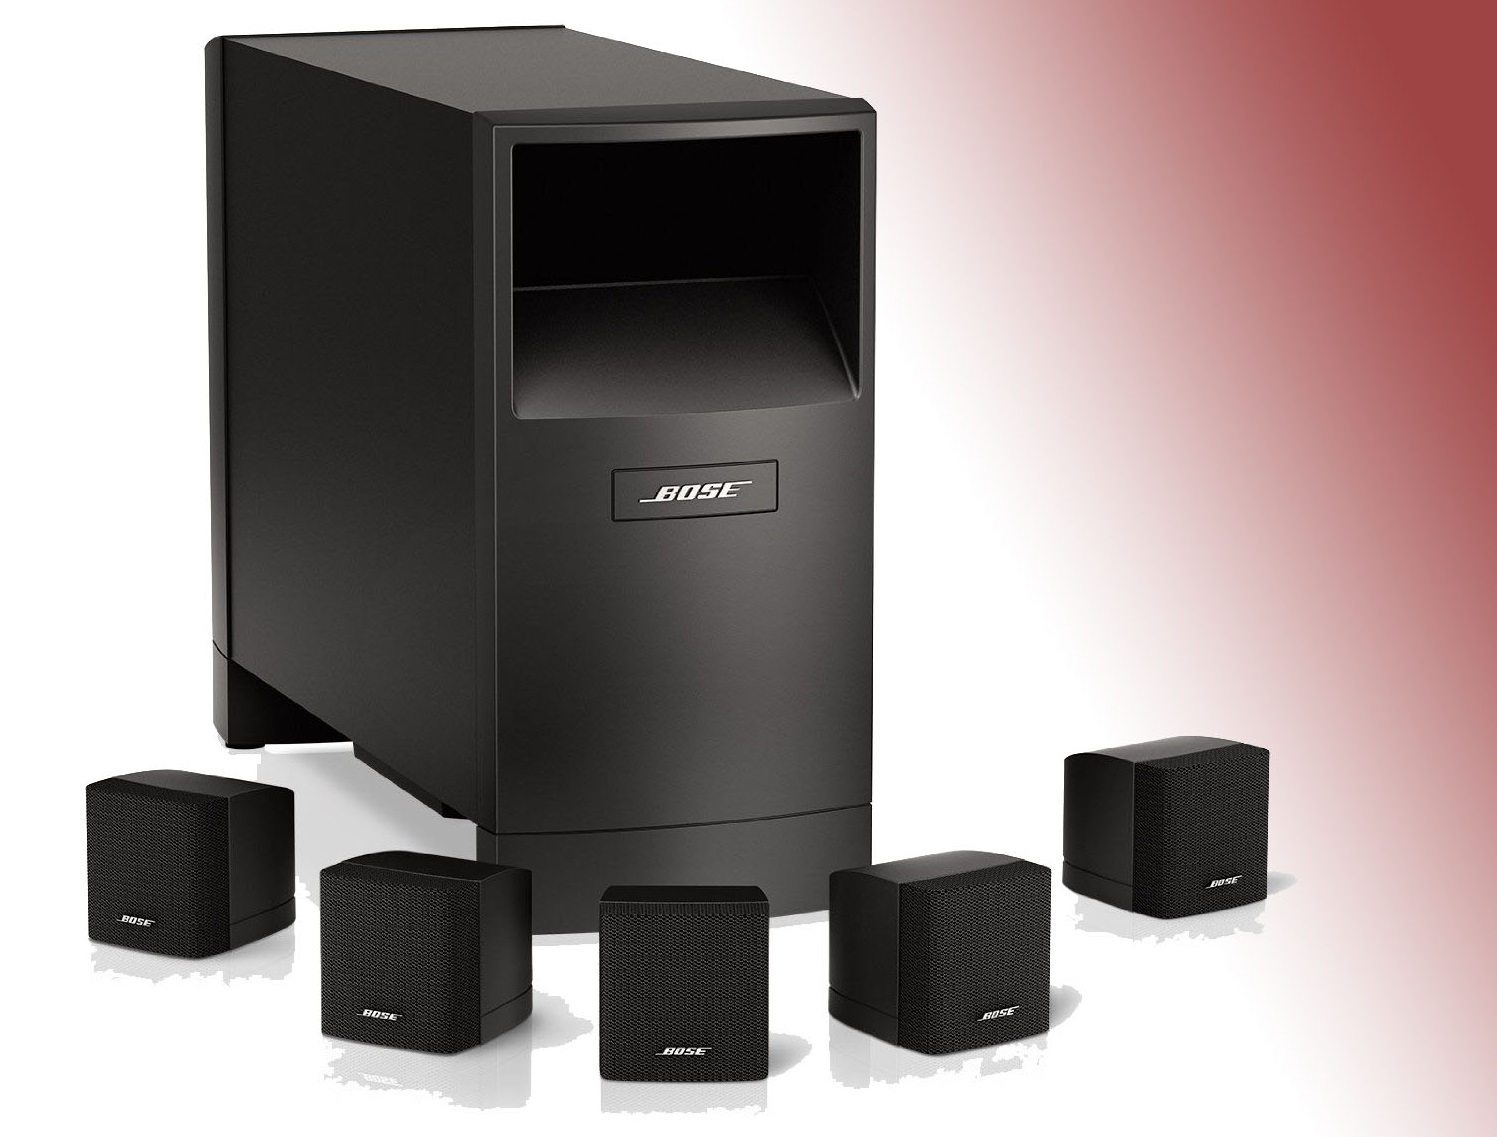 Bose Acoustimass 6 Review - Small Yet Powerful Speakers